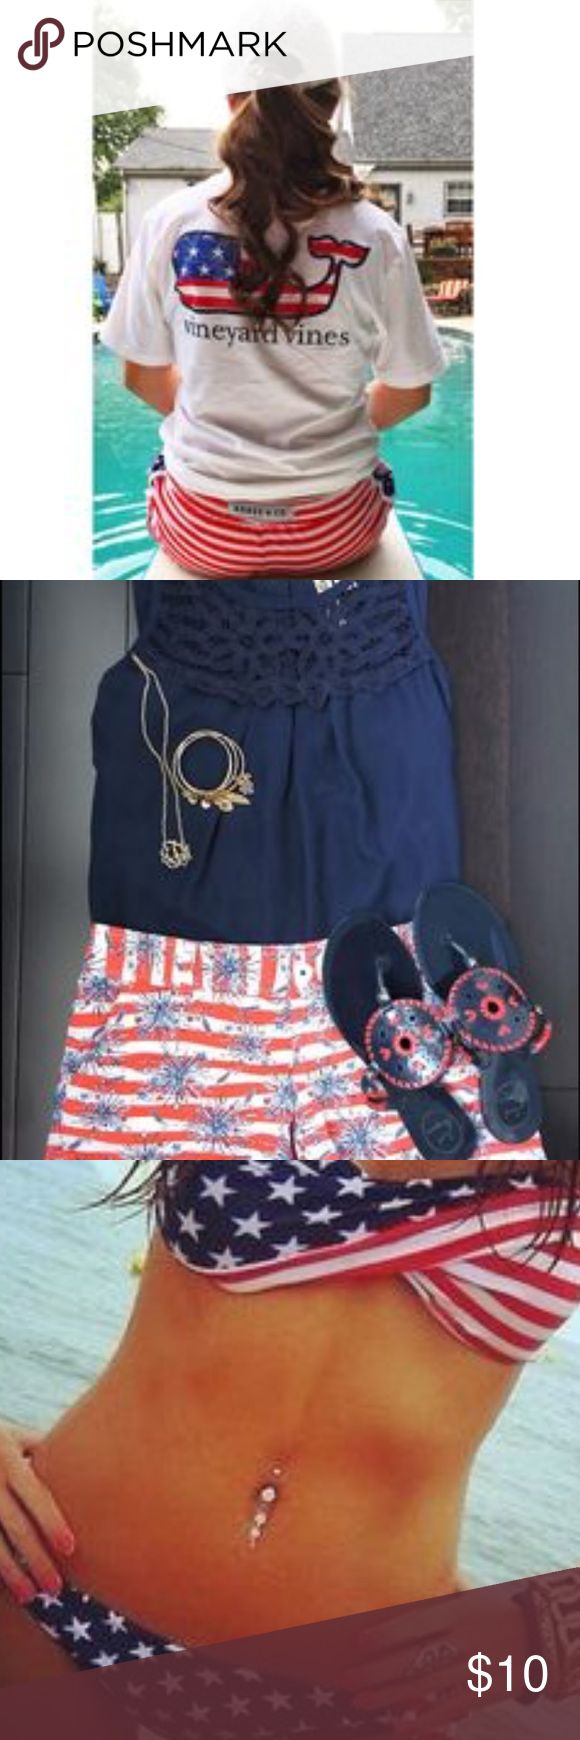 ISO 4th of July OUTFIT & BIKINI Hello!☀️ So Fourth of July is coming soon and I'm in need of a new preppy Fourth outfit  (shirt, shorts, shoes, hats) as well as a new Fourth bikini (age appropriate please) please let me know if you have anything I can check out!!    ~ Fourth of July, Independence Day, America, American Flag, nautical, patriotic, Stars and Stripes ~ Vineyard Vines Tops